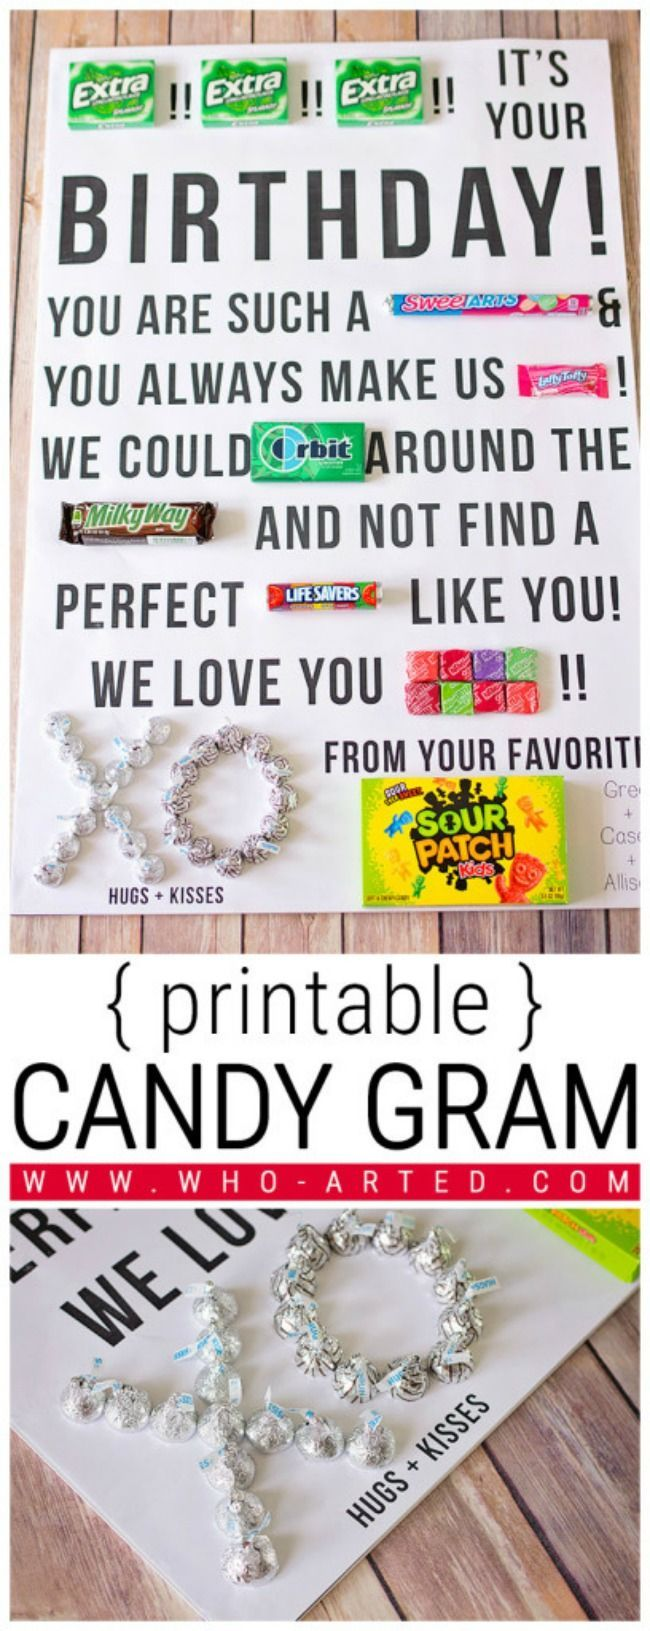 The 11 Best Candy Gram Ideas | Candy cards, Candy grams and Cards